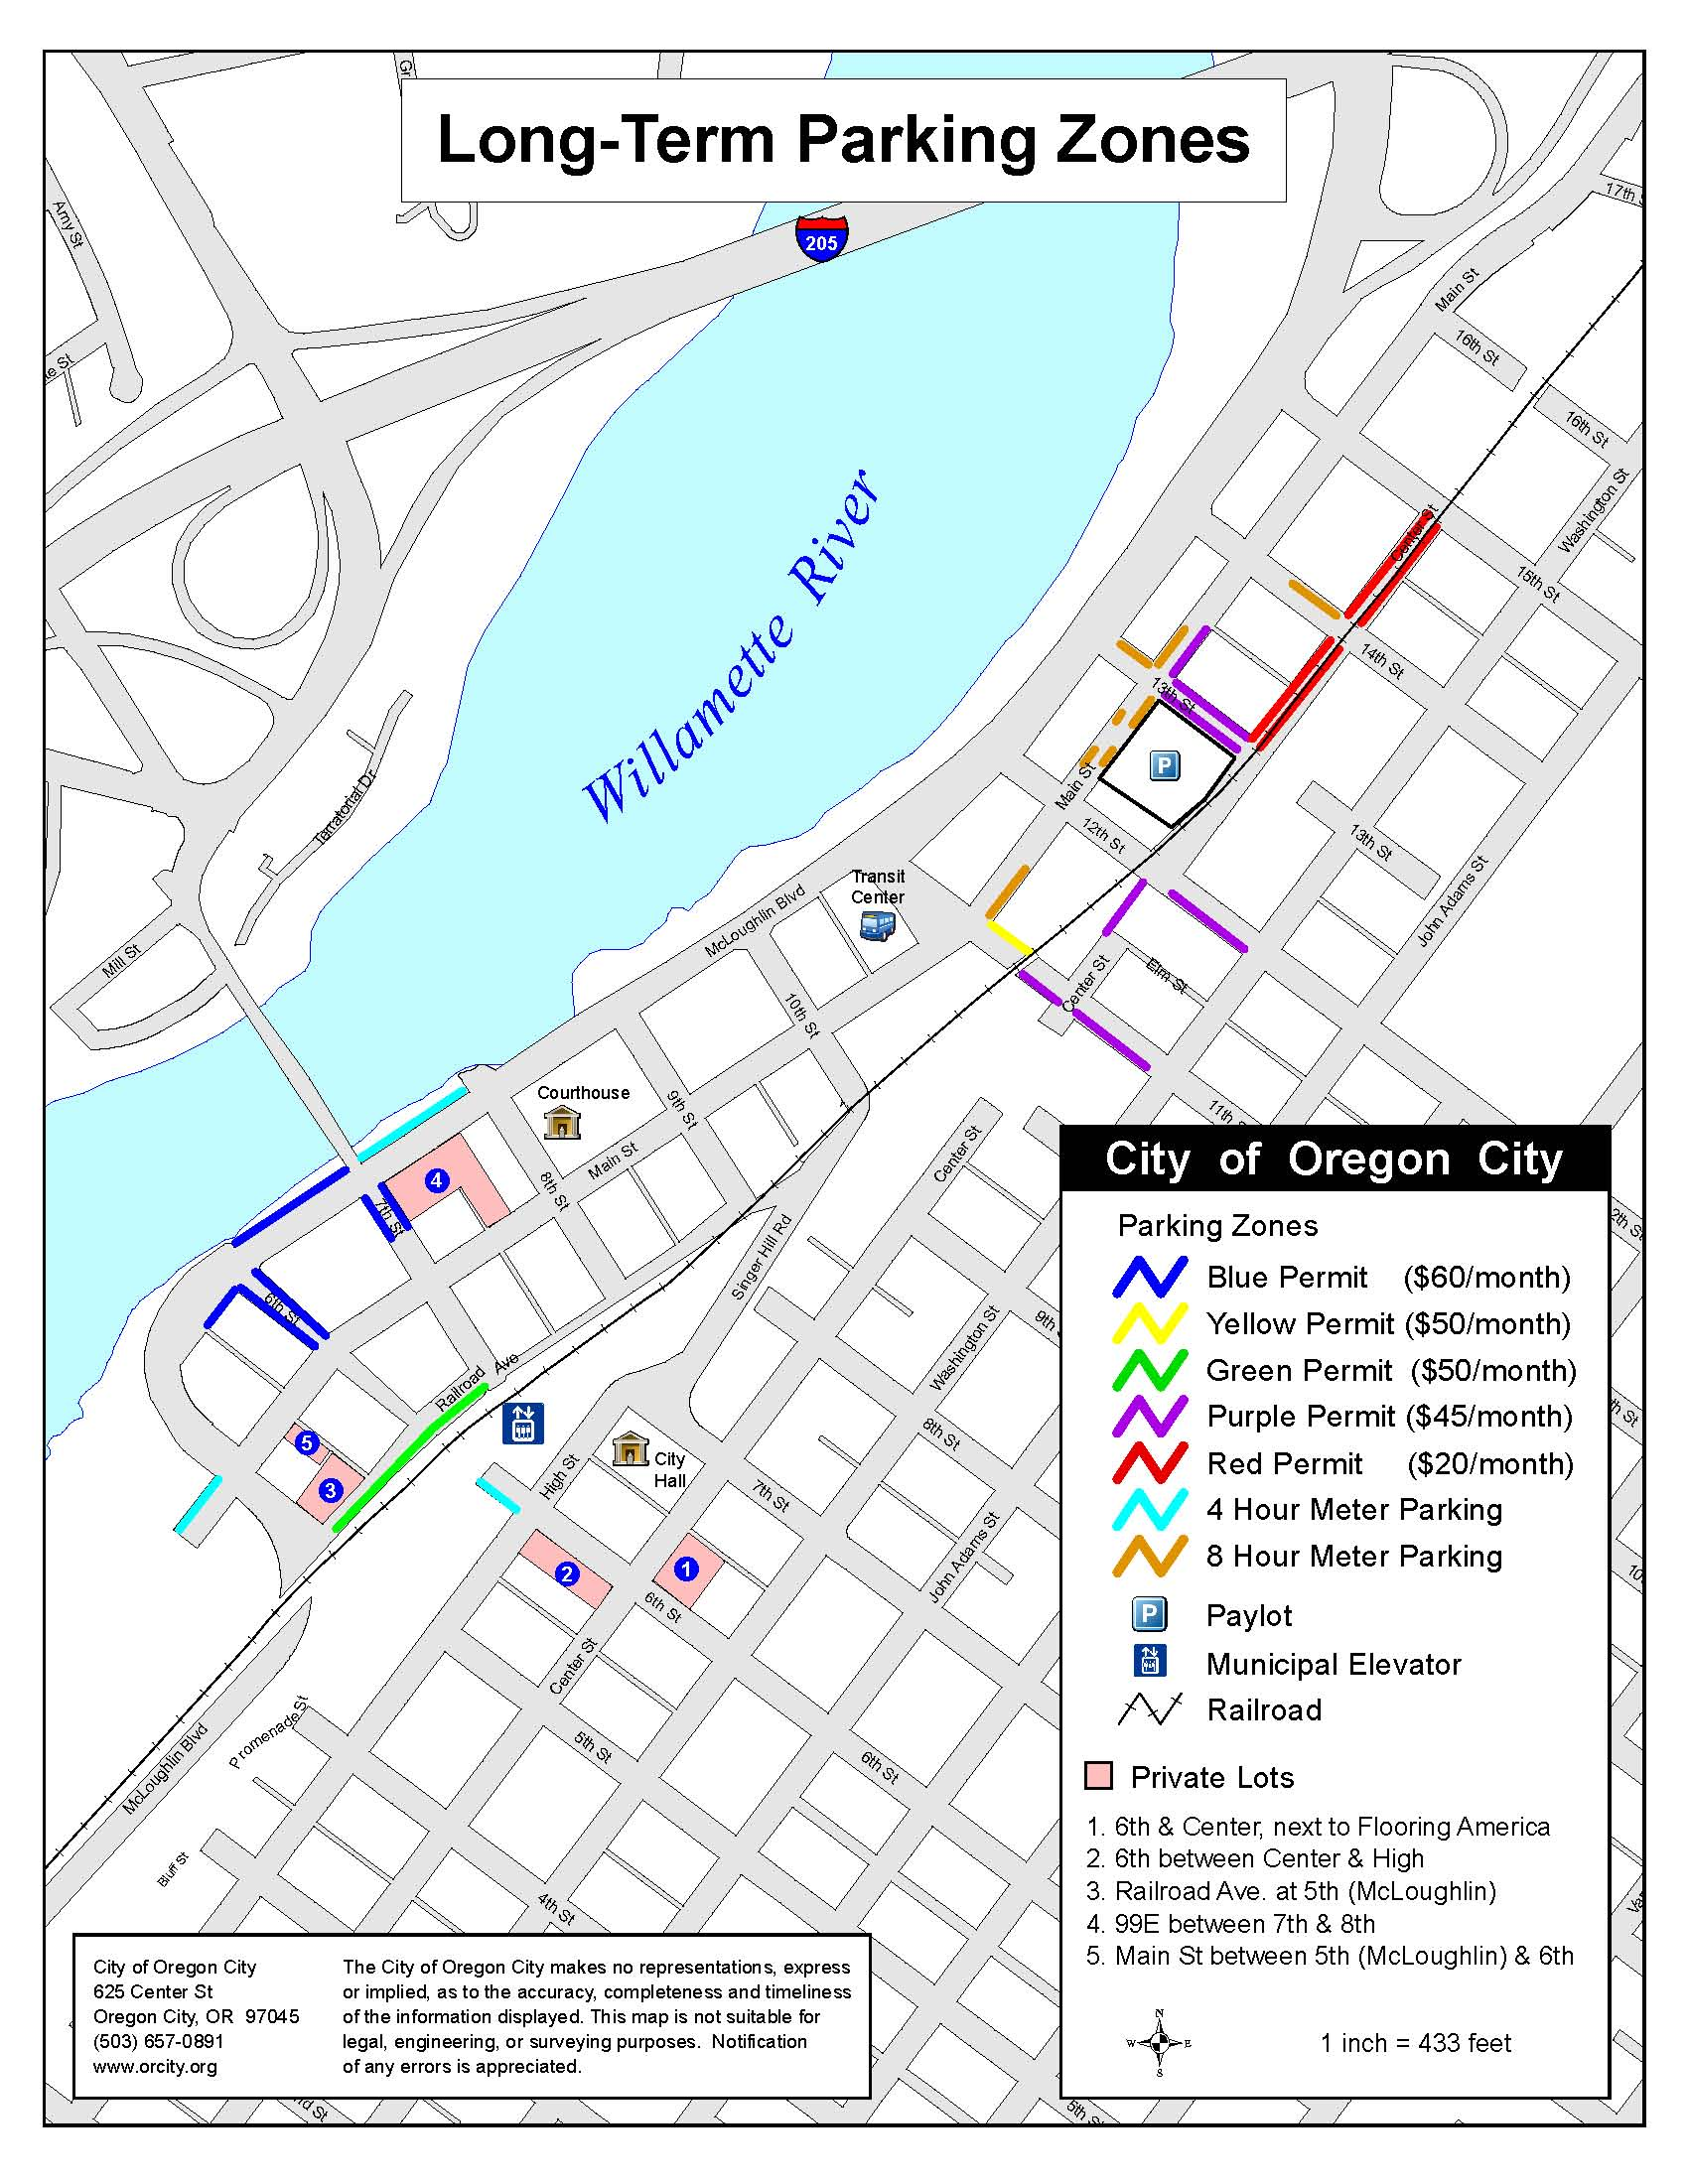 Downtown Parking Information City Of Oregon City - City map of oregon